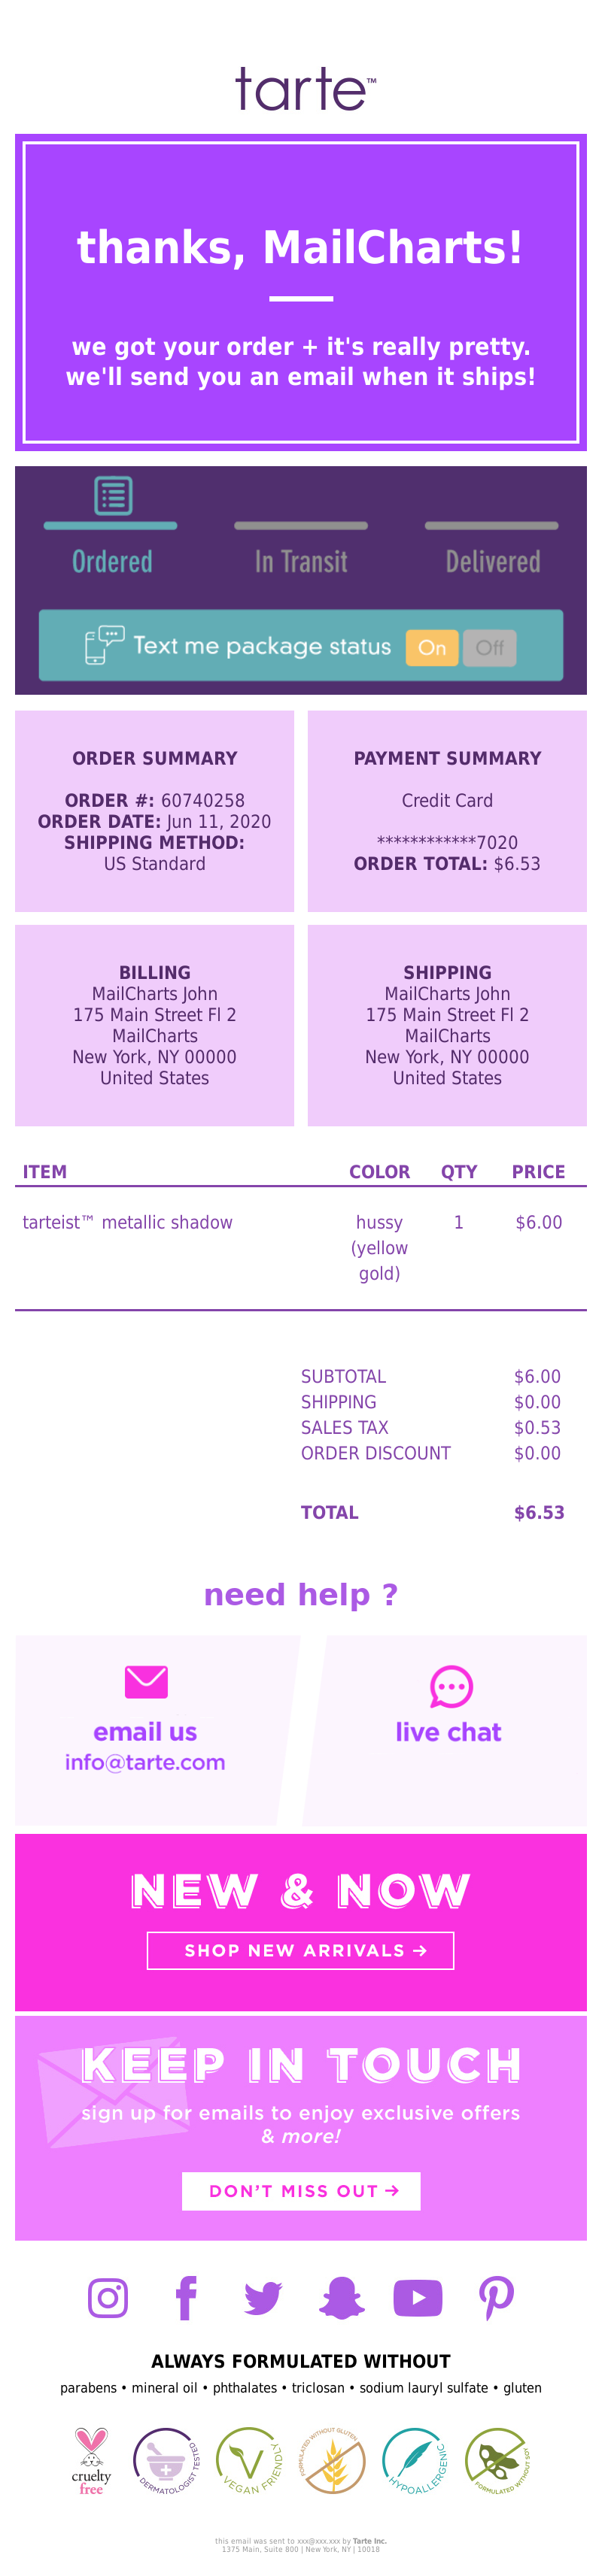 Tarte Cosmetics - GOT IT! Order Confirmation 60740258